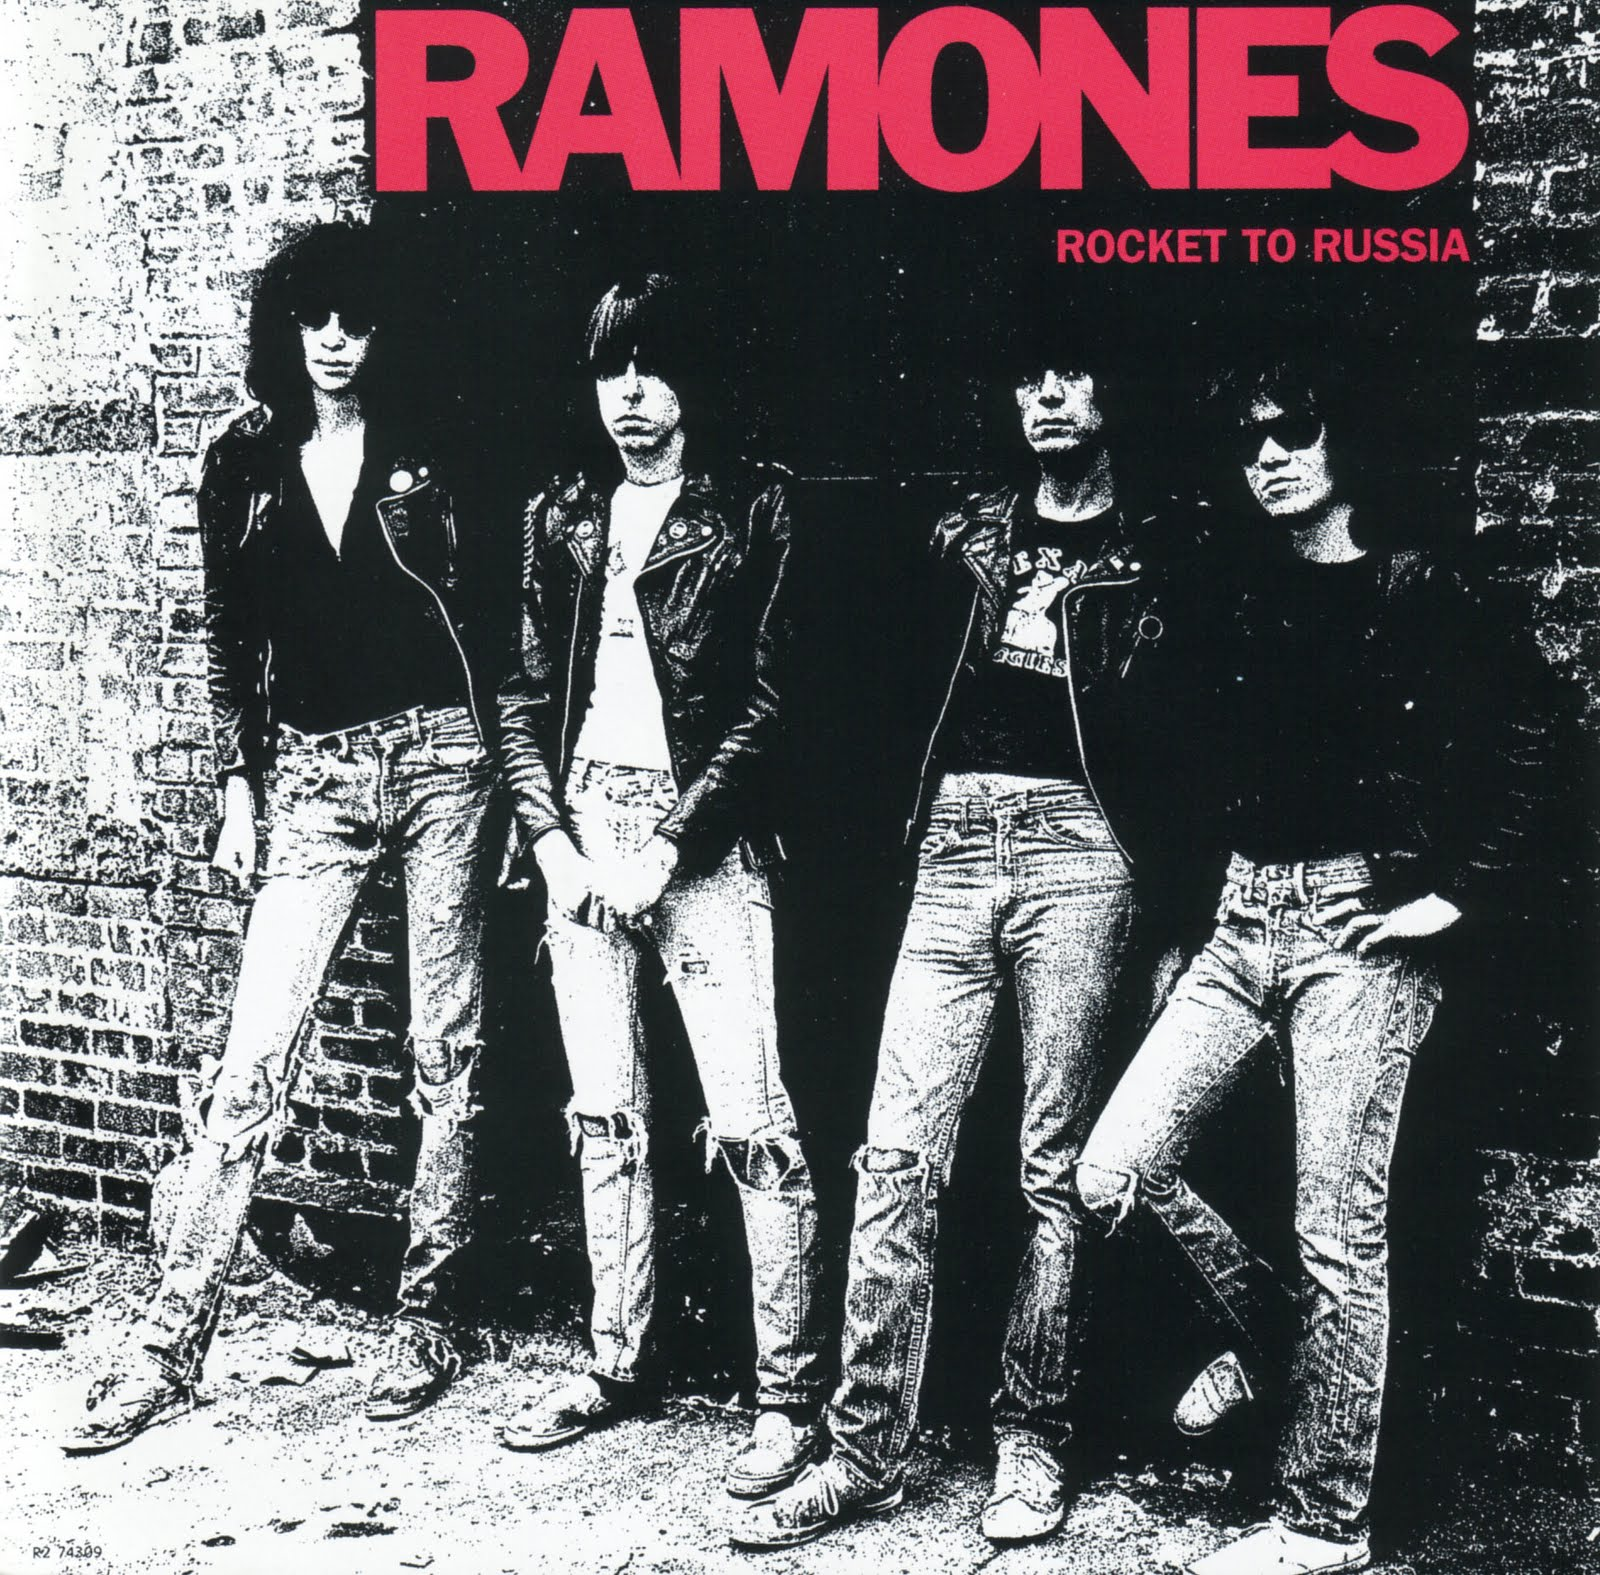 The Ramones - Rocket To Russia (CD) (Full Album)